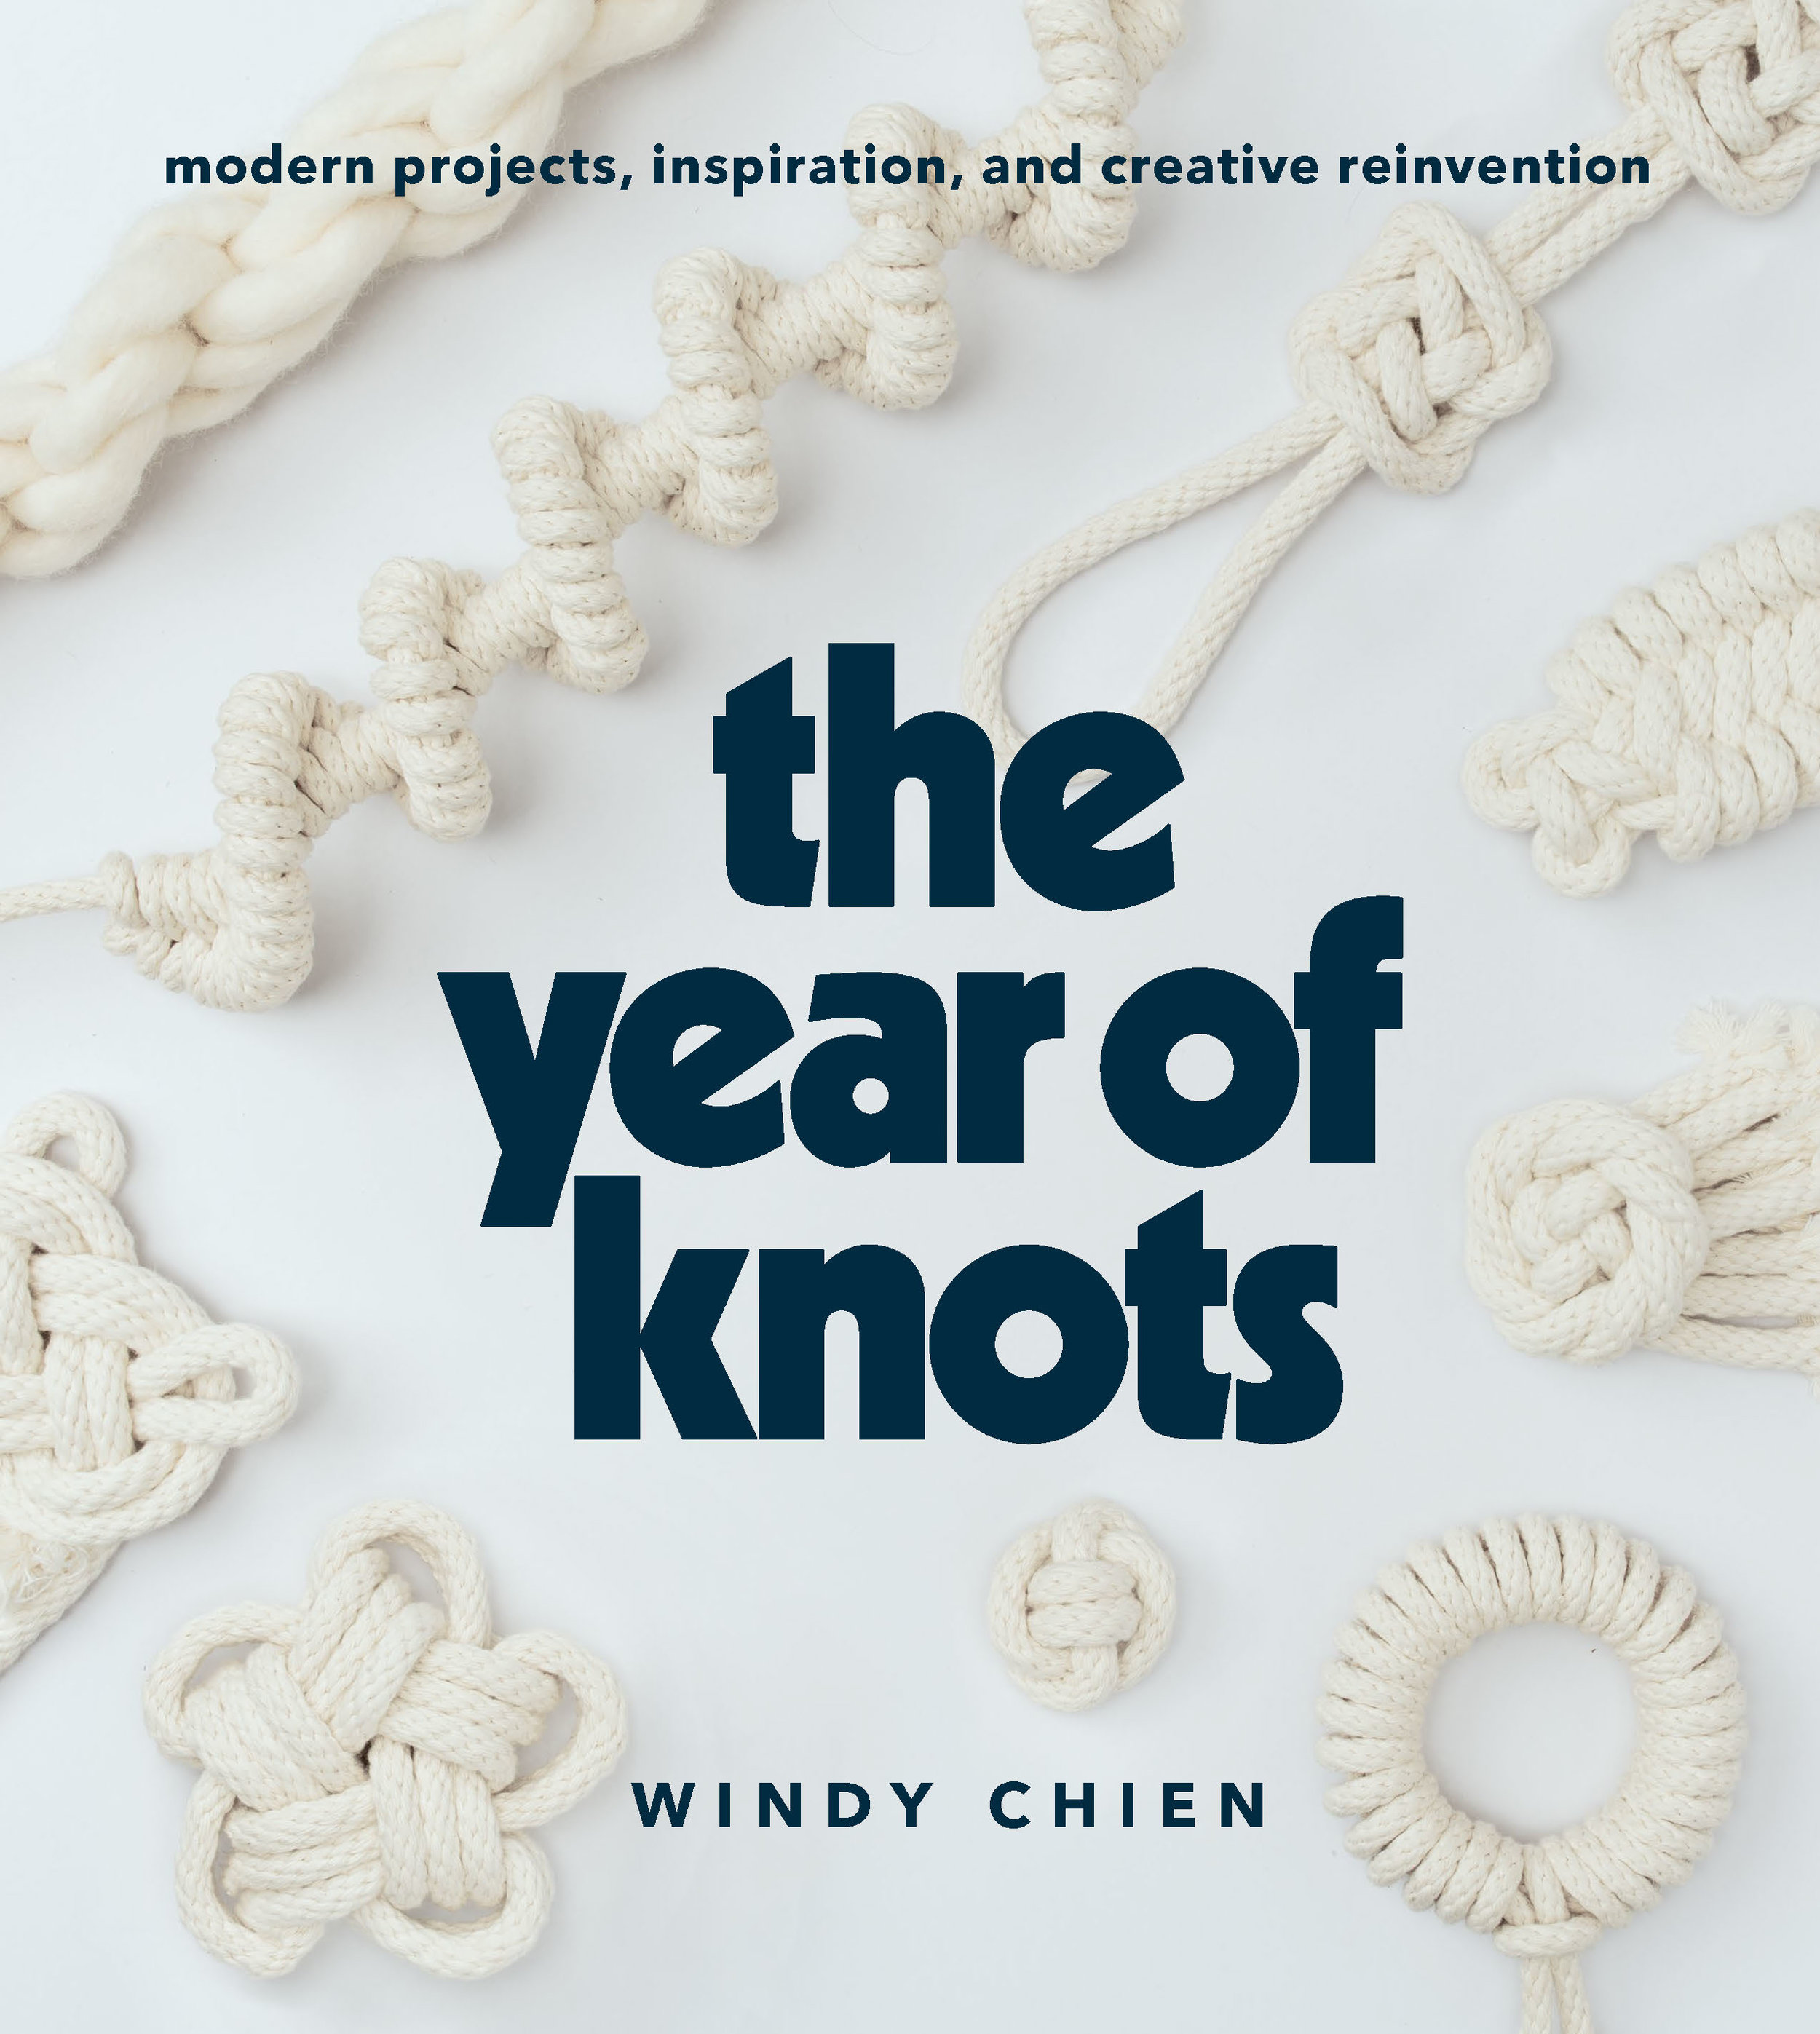 Year of Knots by Windy Chien - book image 1